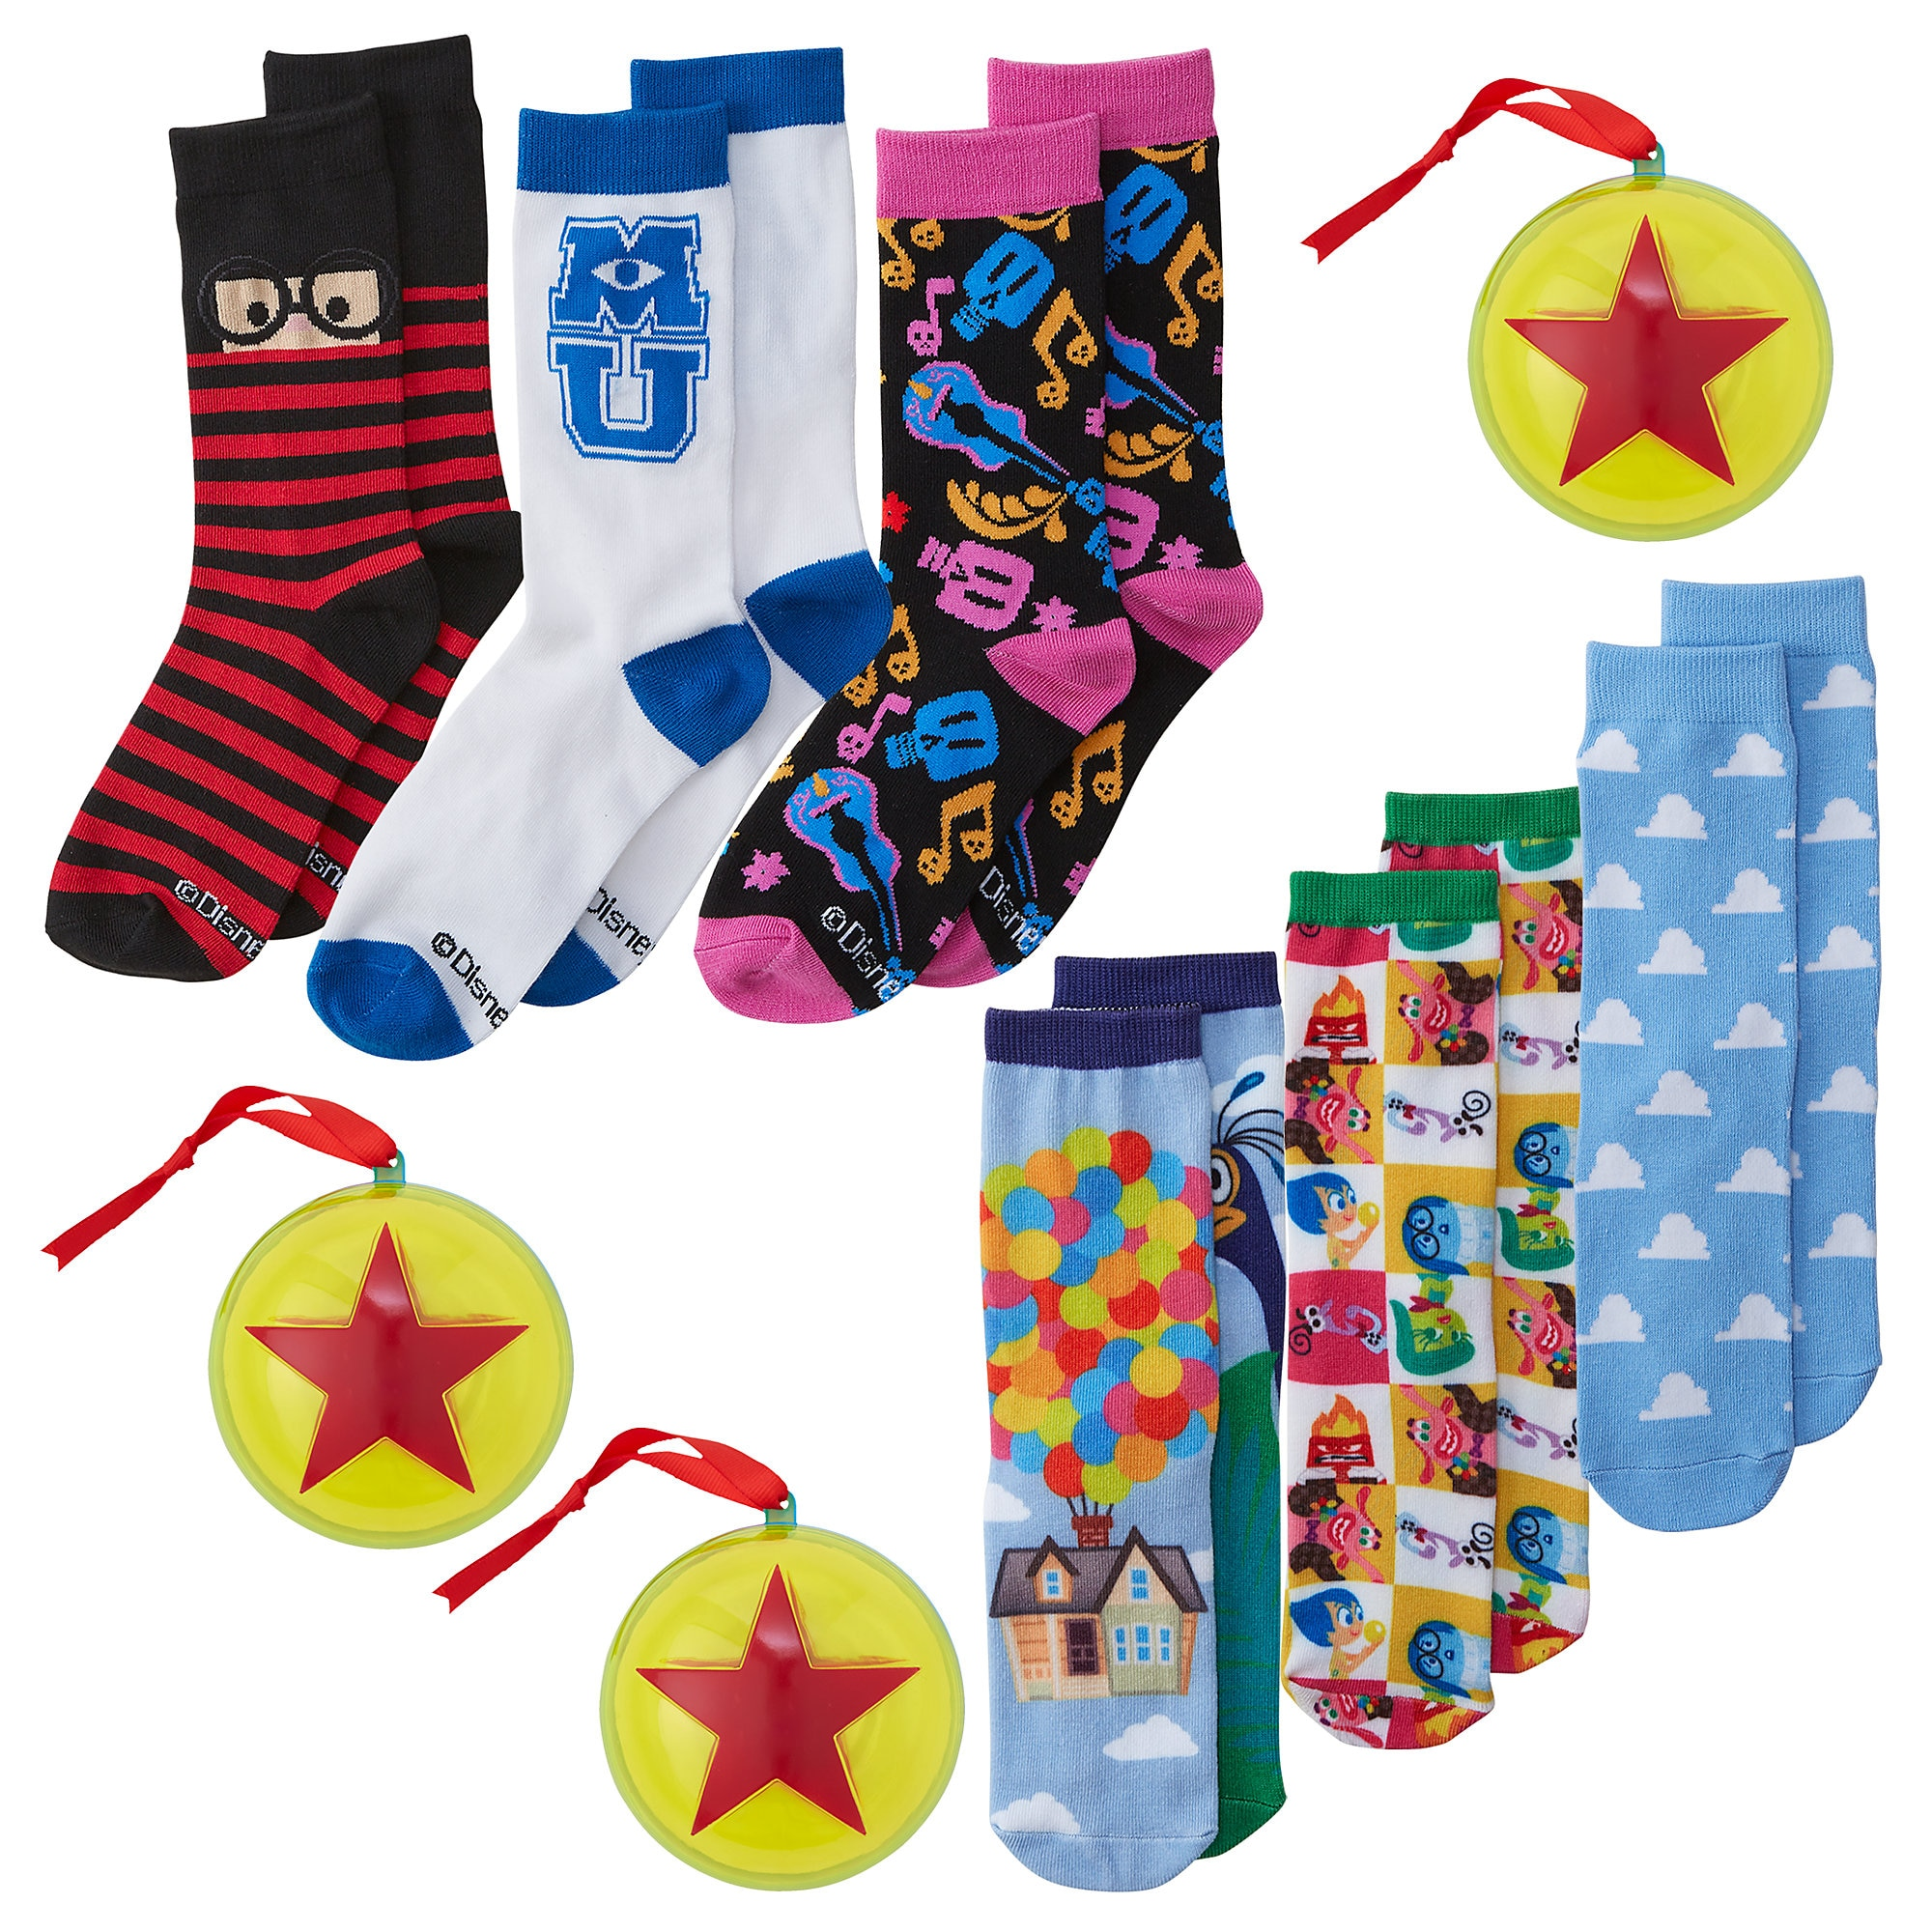 Pixar Holiday Socks in Ornaments Collection for Adults